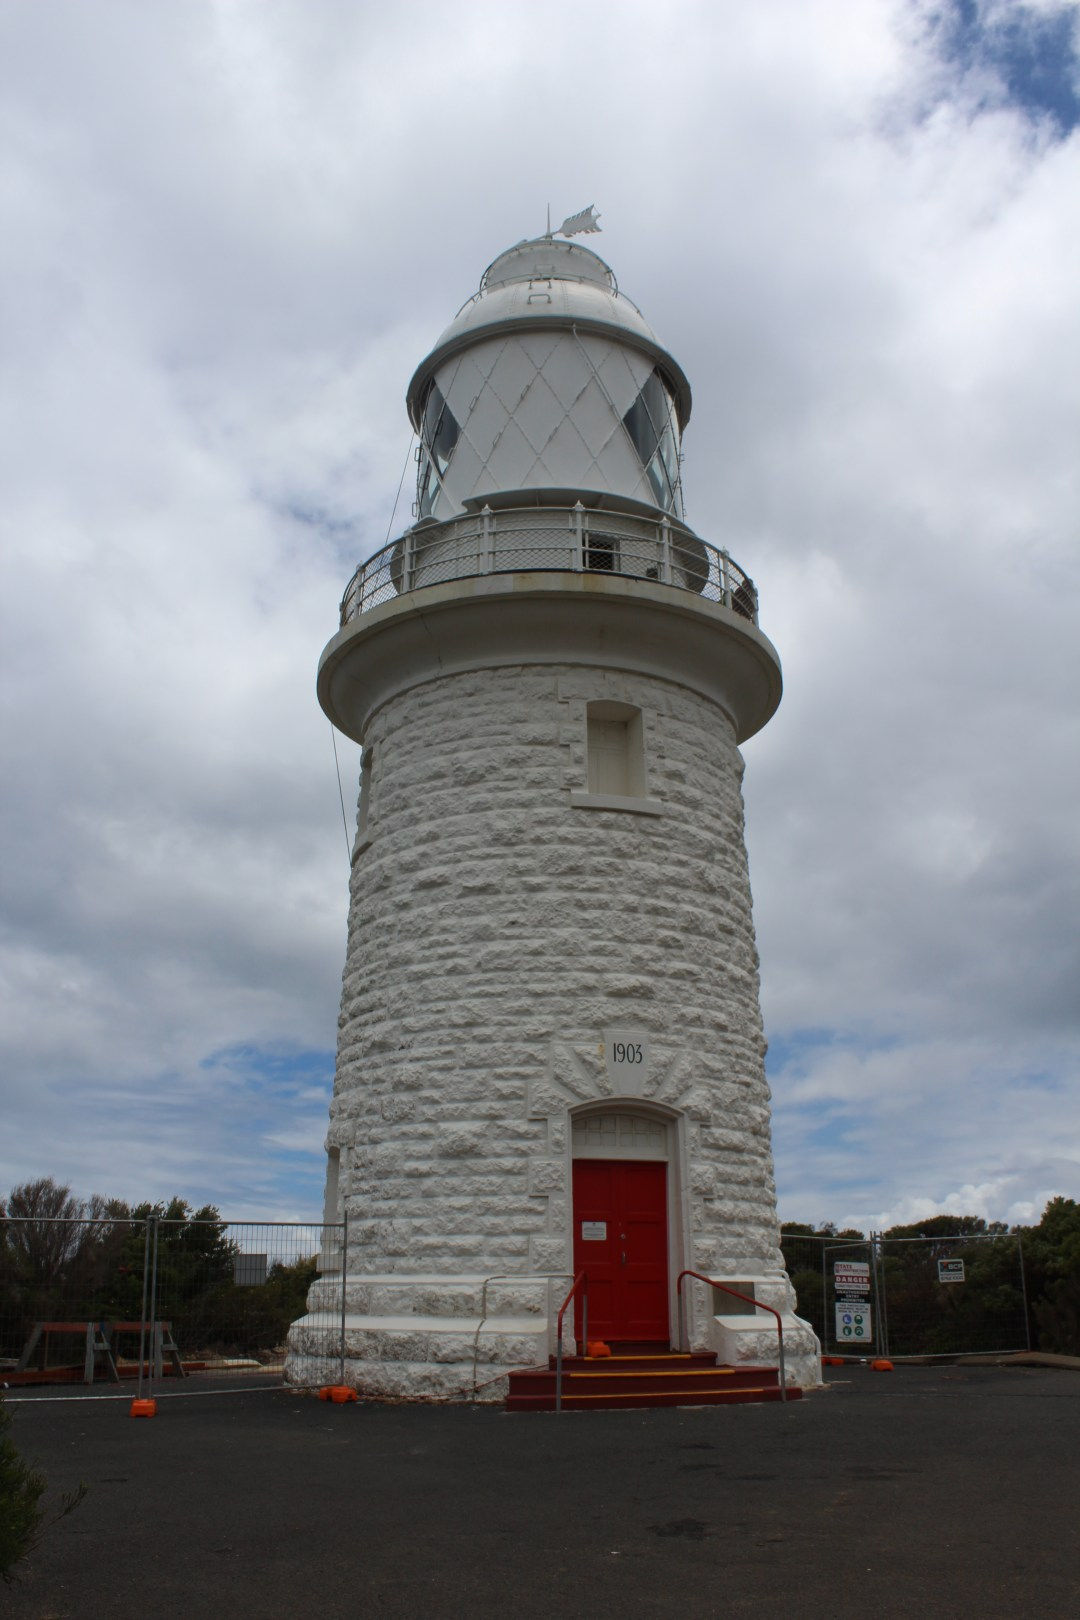 Cape Naturaliste lighthouse with a red door and white tower